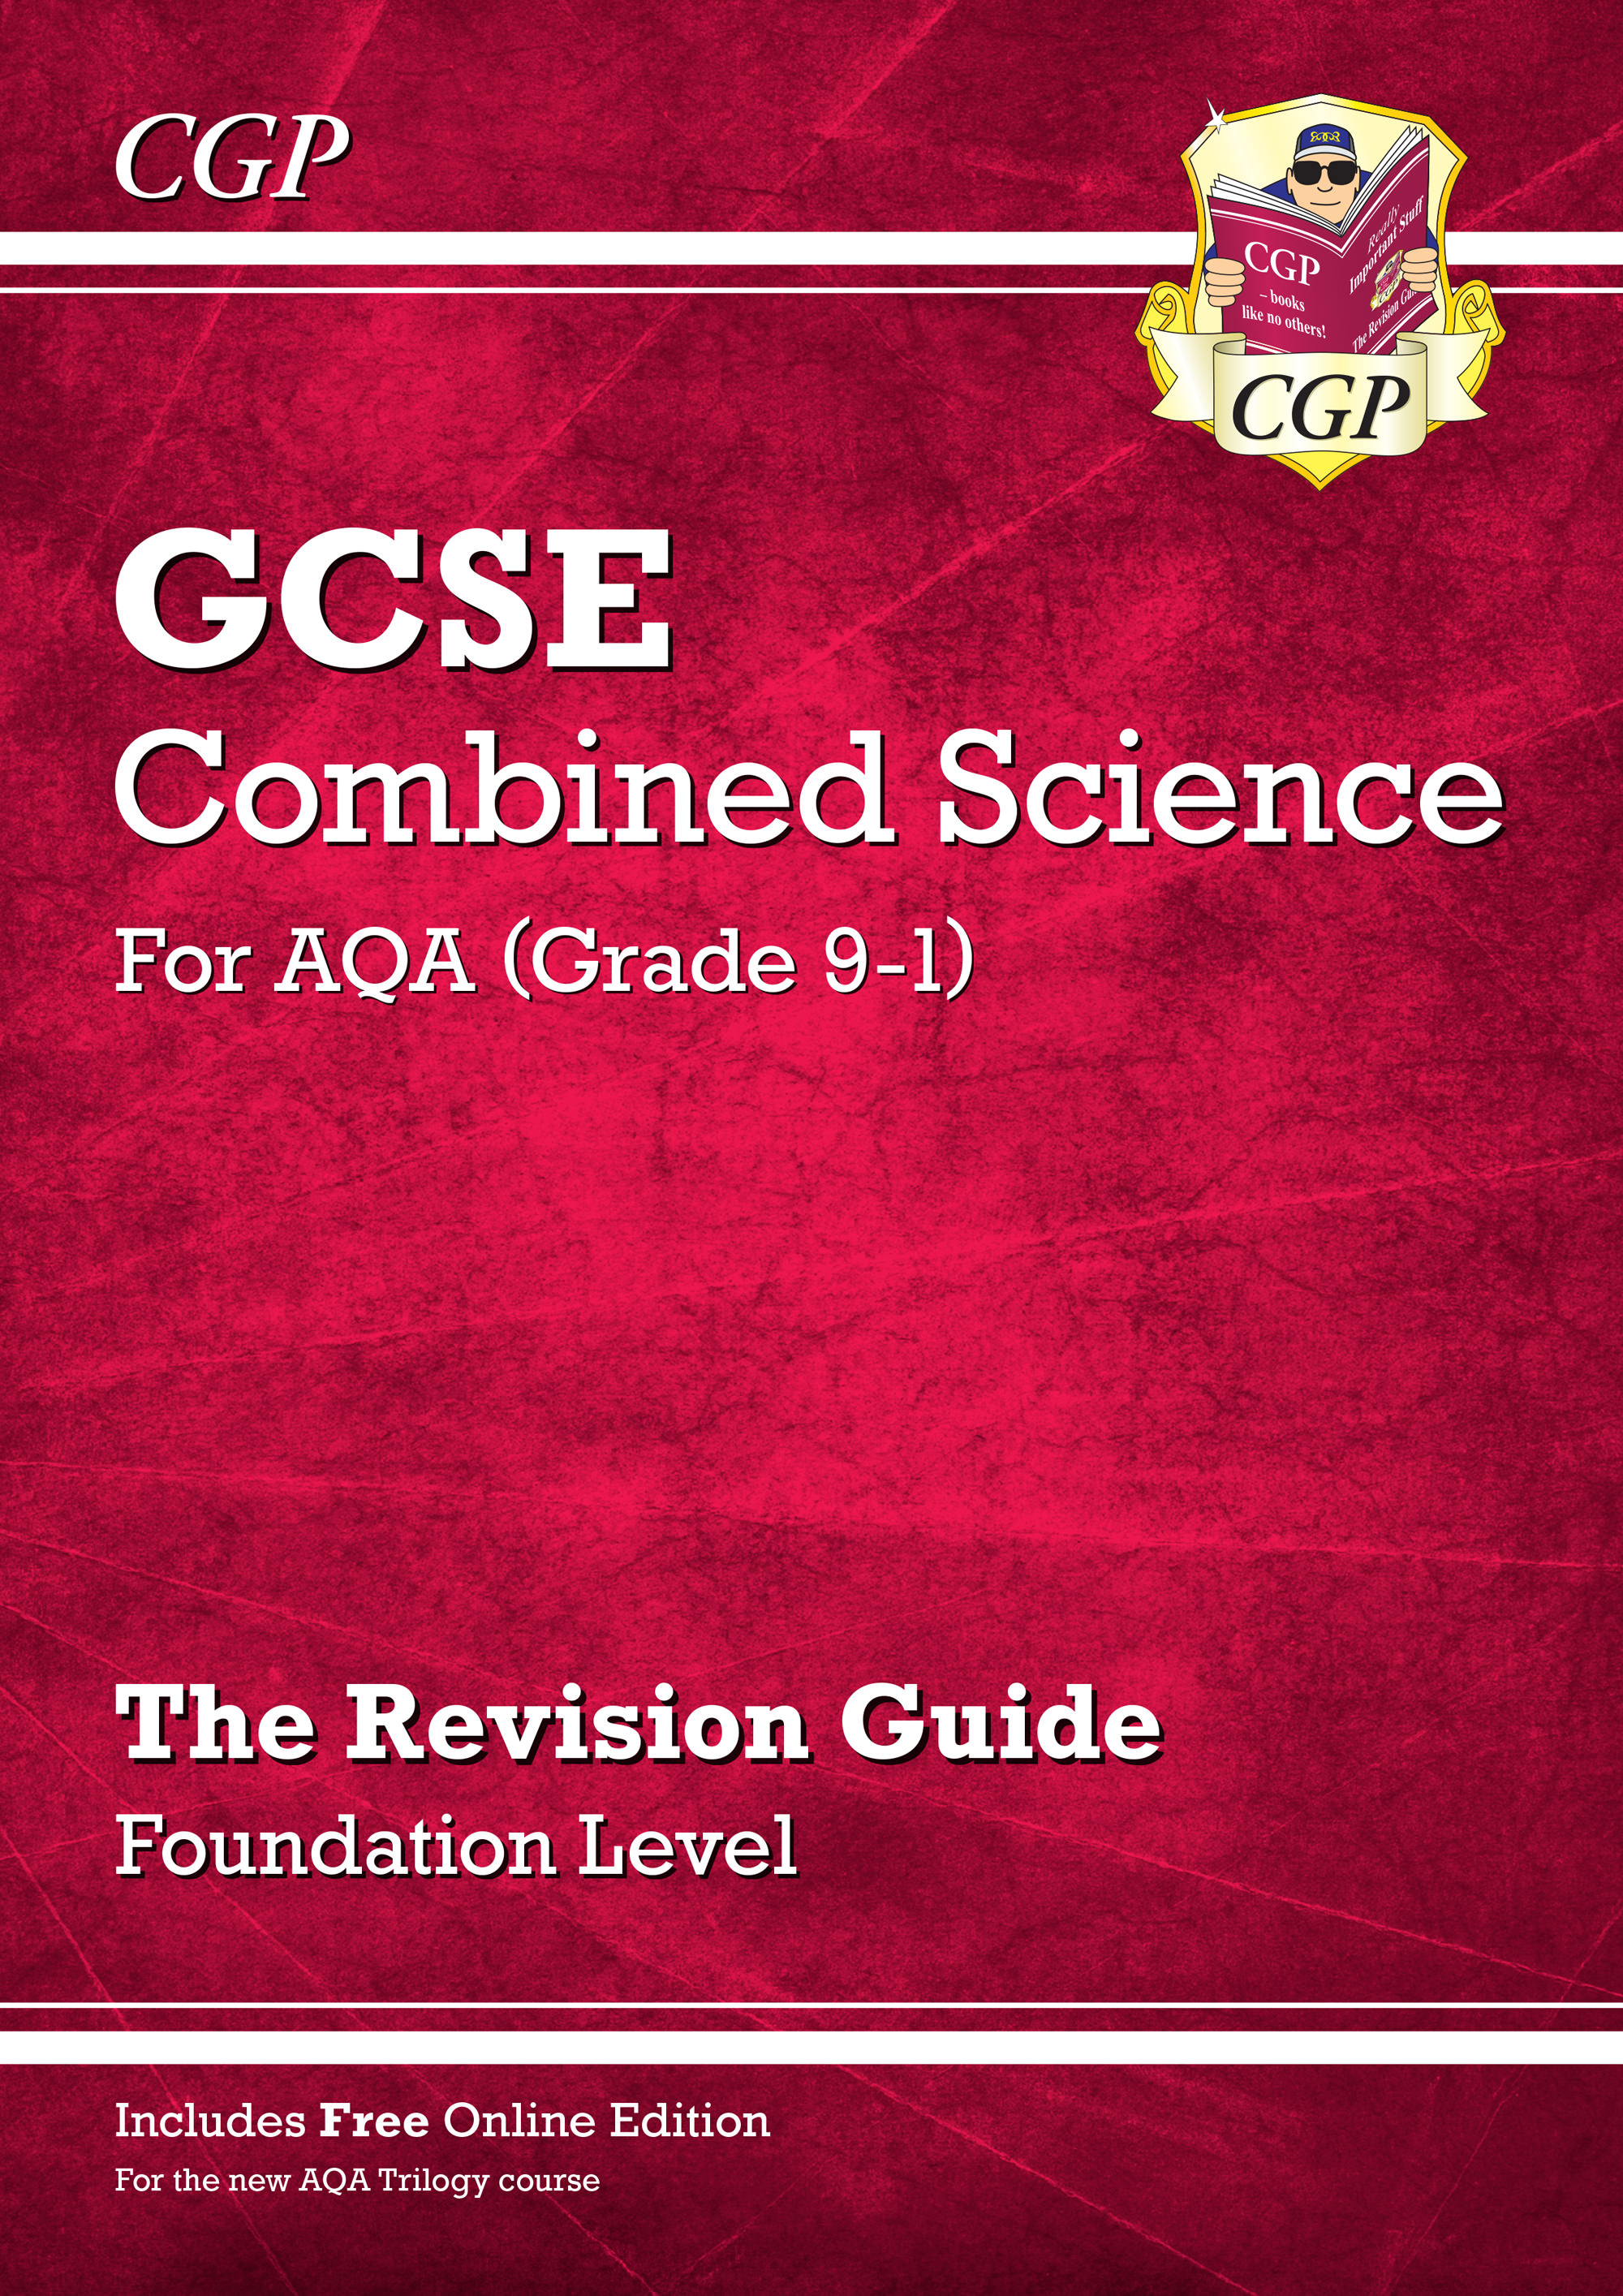 SAFR45 - New Grade 9-1 GCSE Combined Science: AQA Revision Guide with Online Edition - Foundation